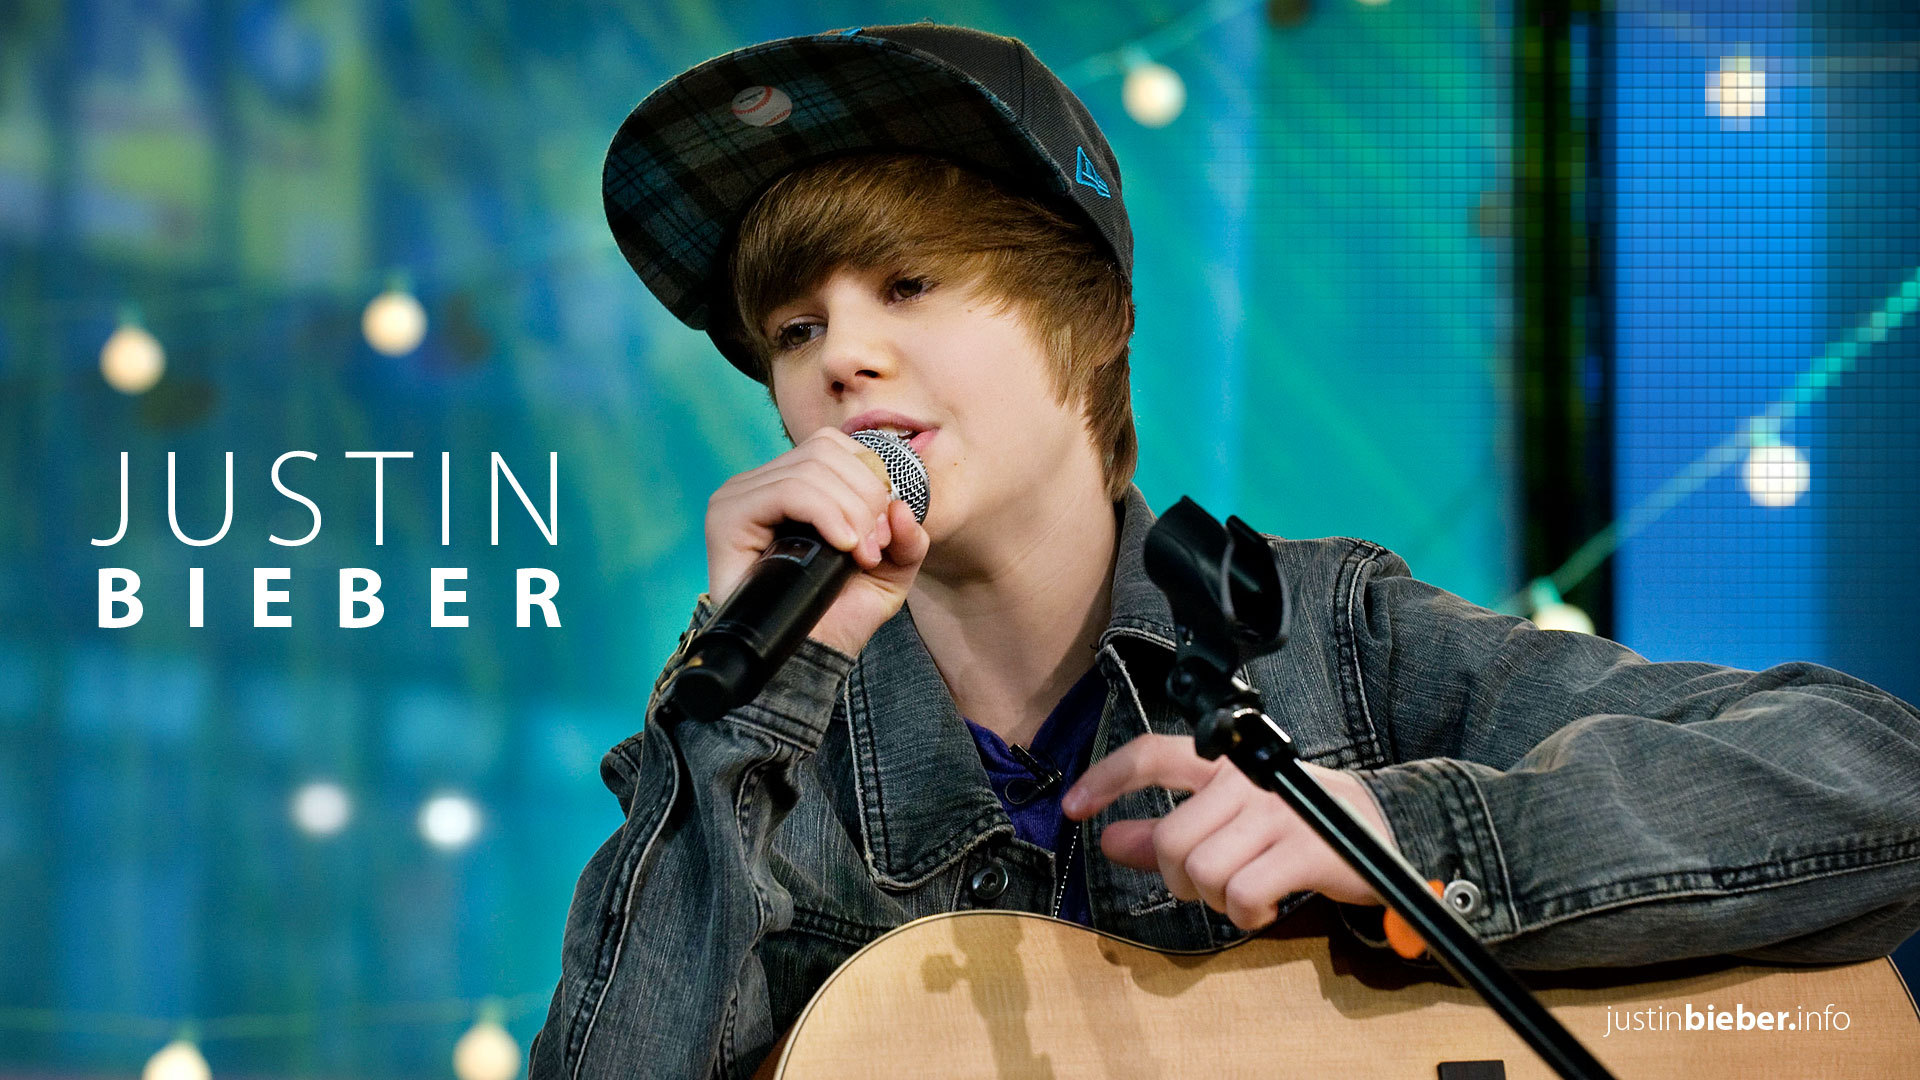 Justin Bieber Full HD Wallpaper And Background Image